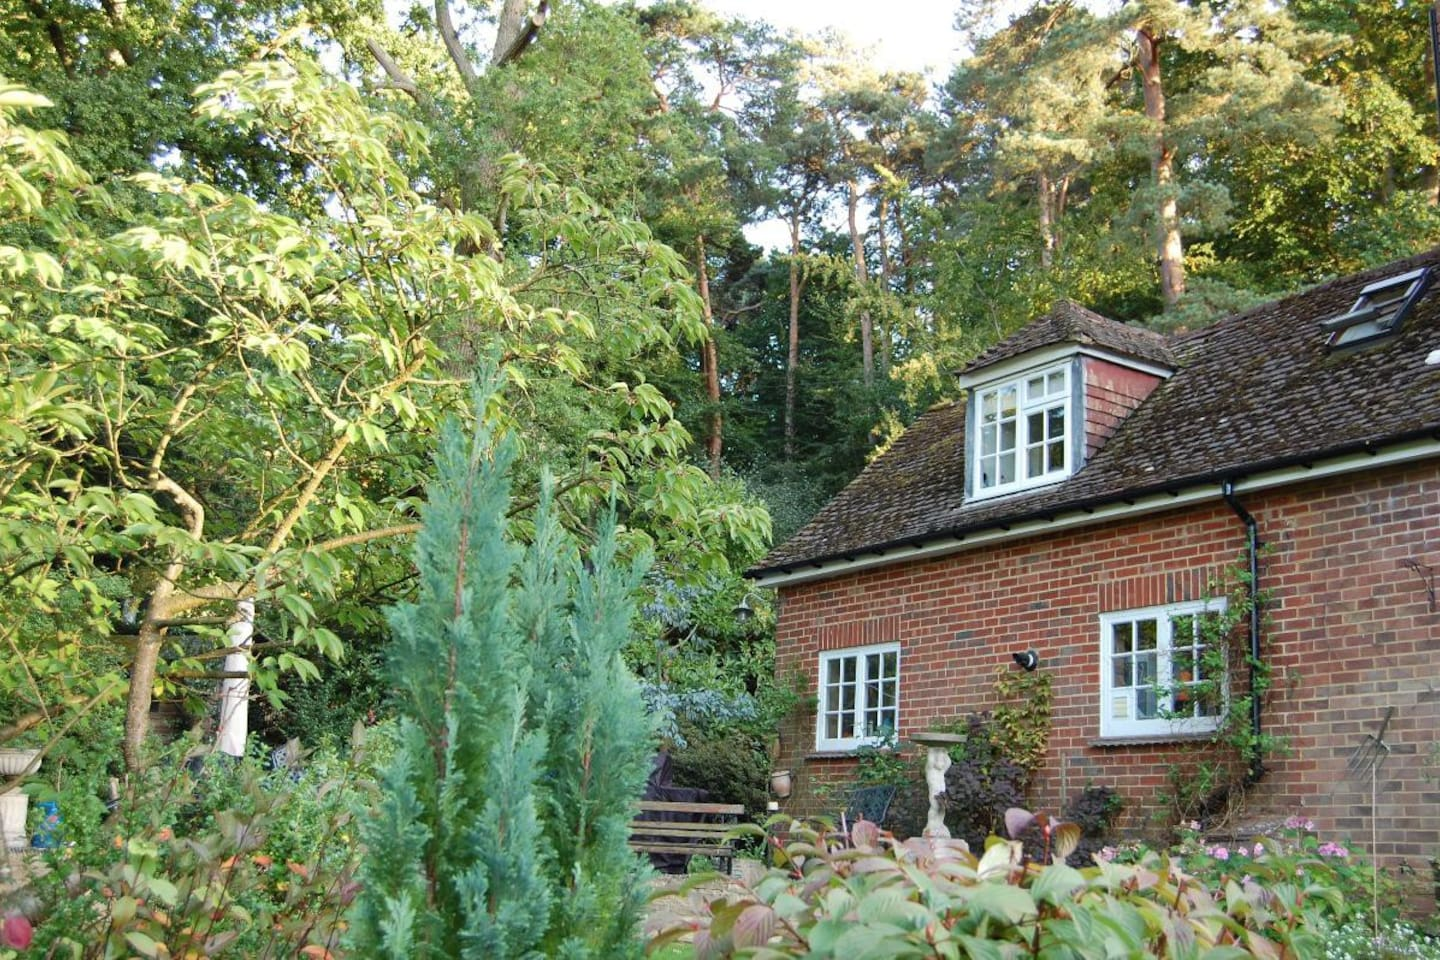 The Haven is above our garage and overlooks the garden.  The window above here, is from the kitchen area.  Entrance to the Haven is through a separate door, next to our garage and can be seen on the main house photo.